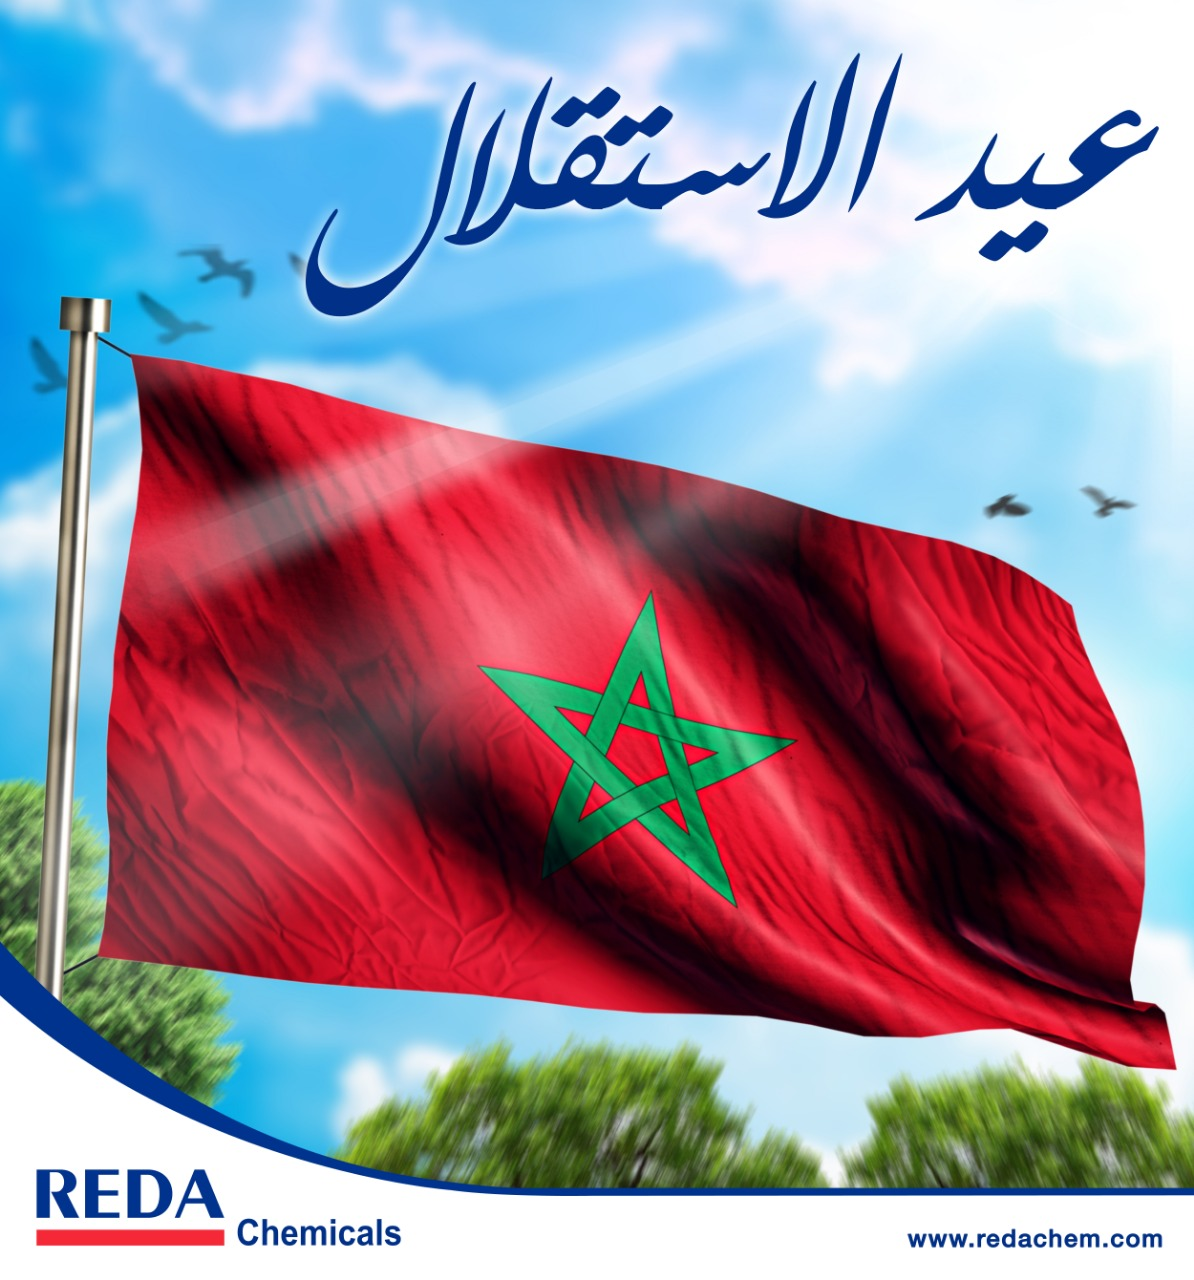 Happy Independece Day Morocco!